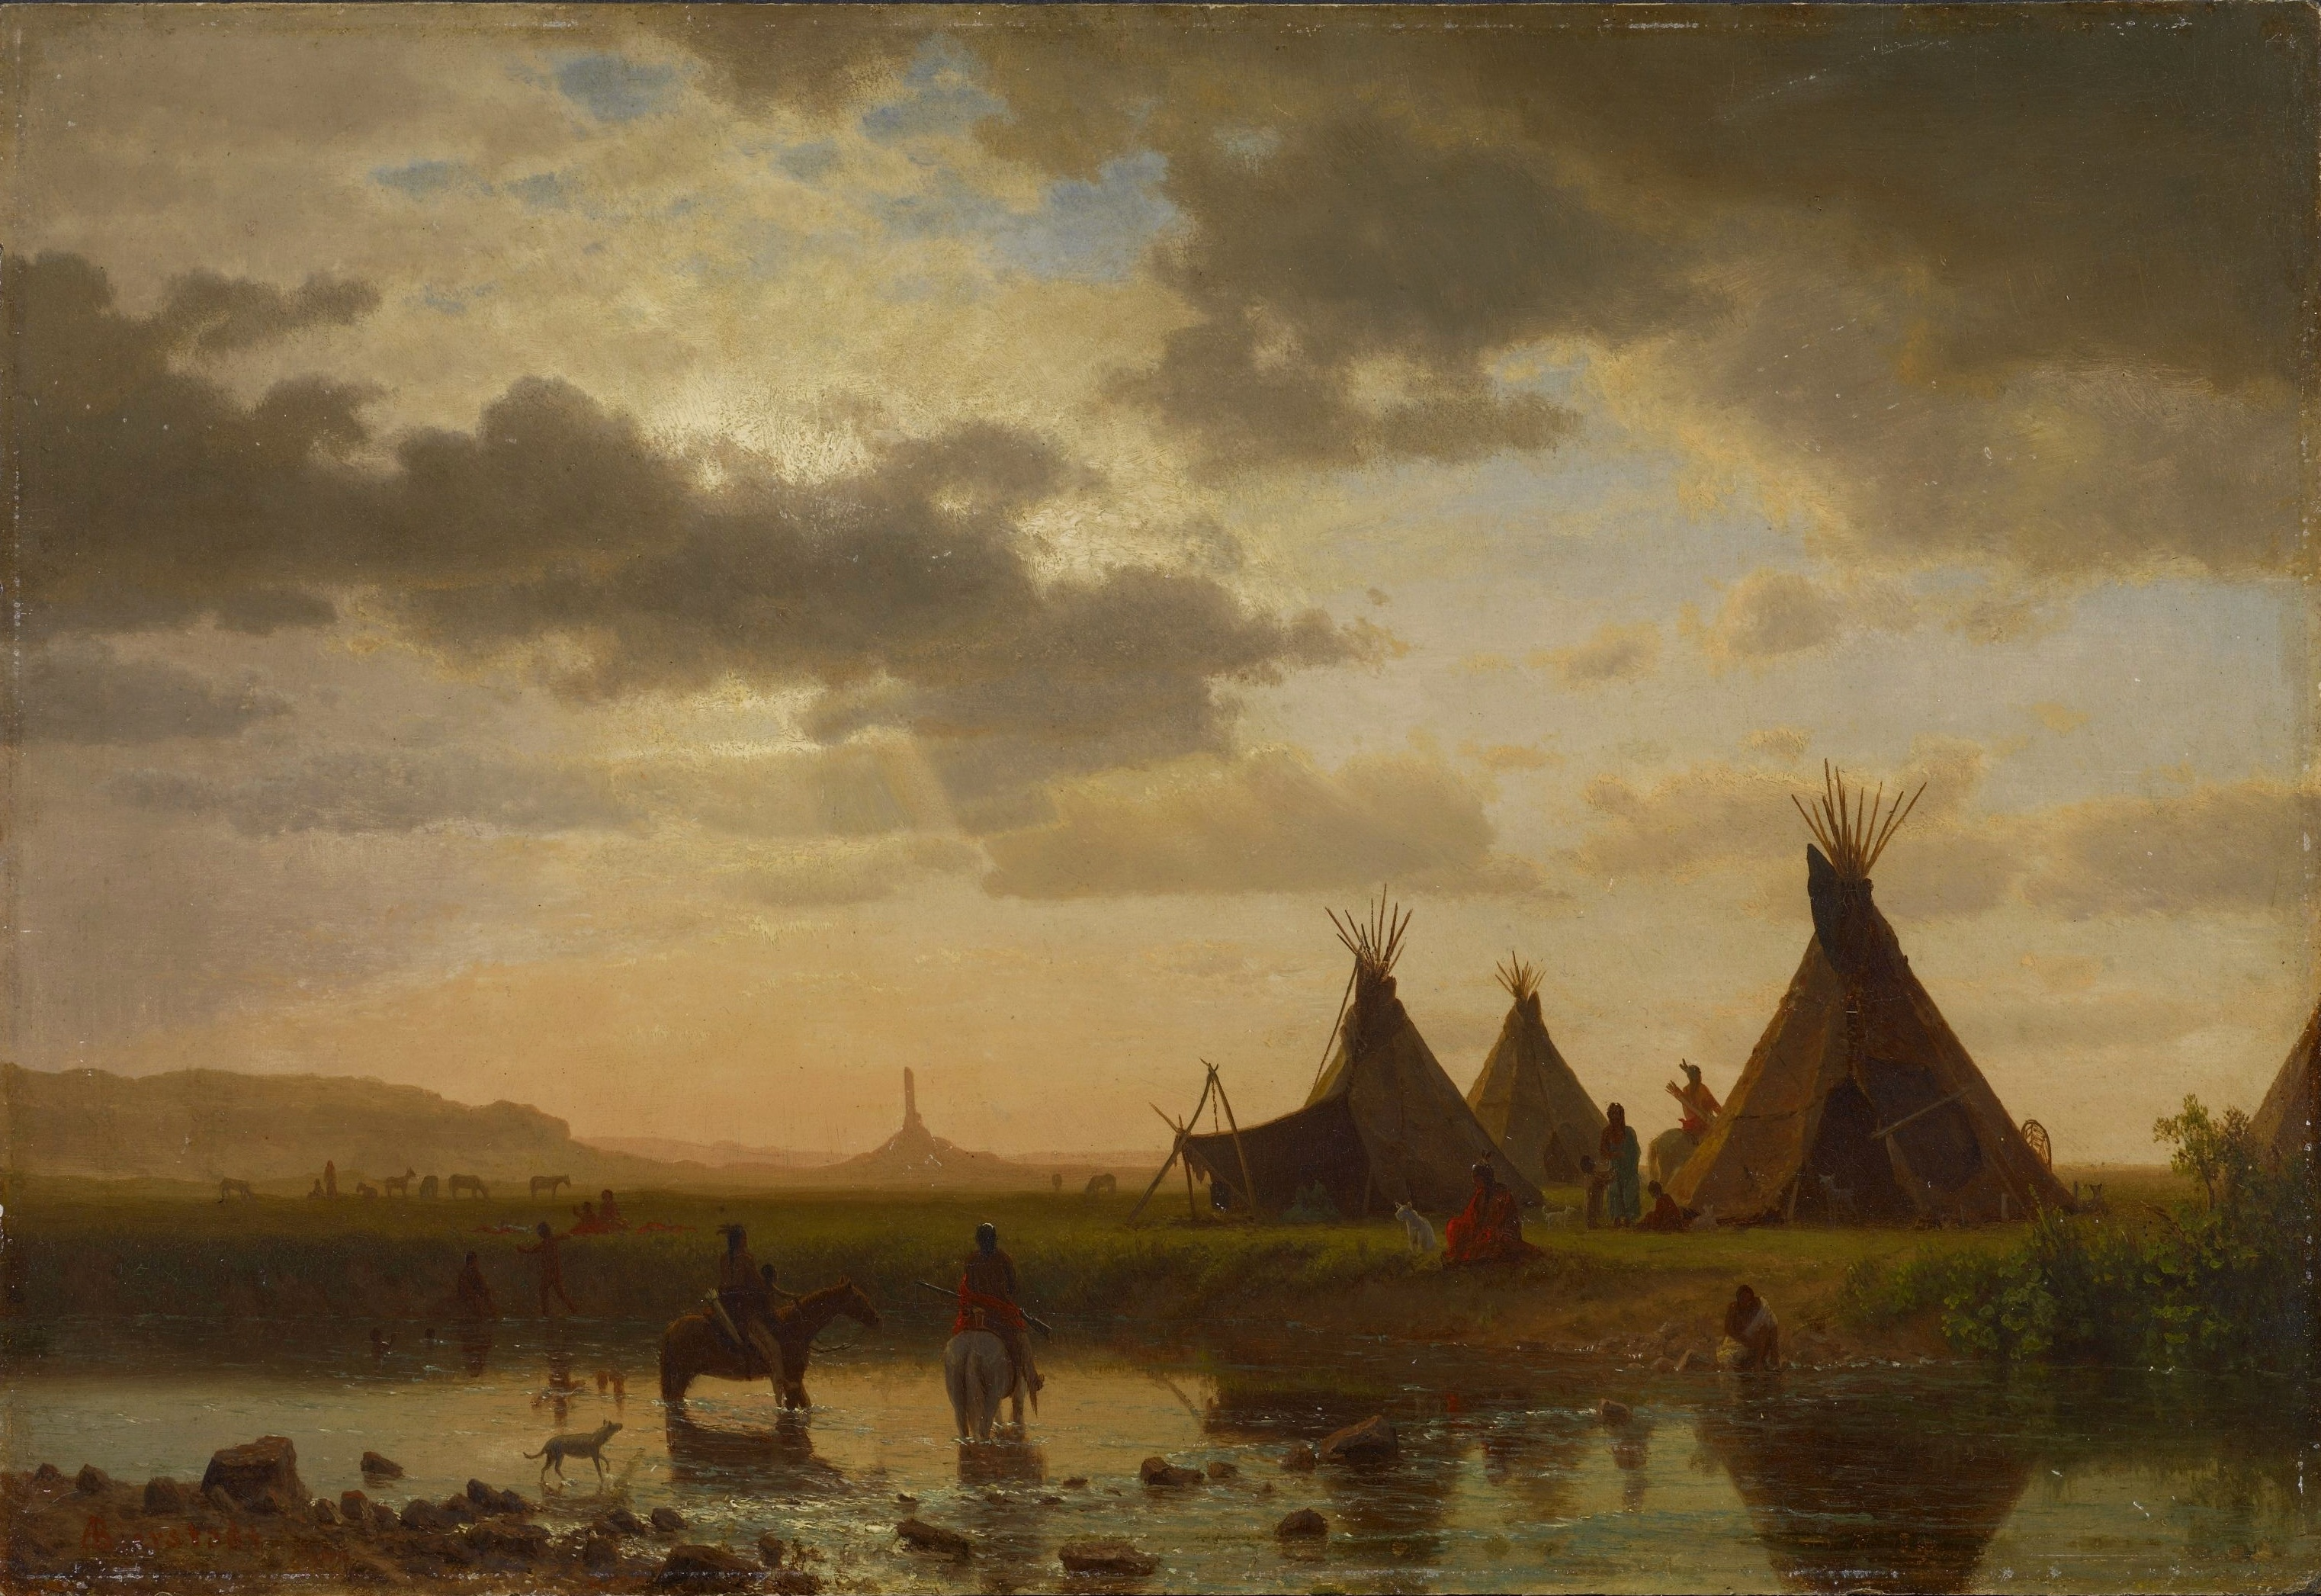 Albert Bierstadt, View of Chimney Rock, Ohalilah Sioux Village in the Foreground, 1860. Oil on canvas, 33.6 cm x 49.2 cm. Colby College Museum of Art, gift of The Honorable Roderic H.D. Henderson, via Wikimedia.